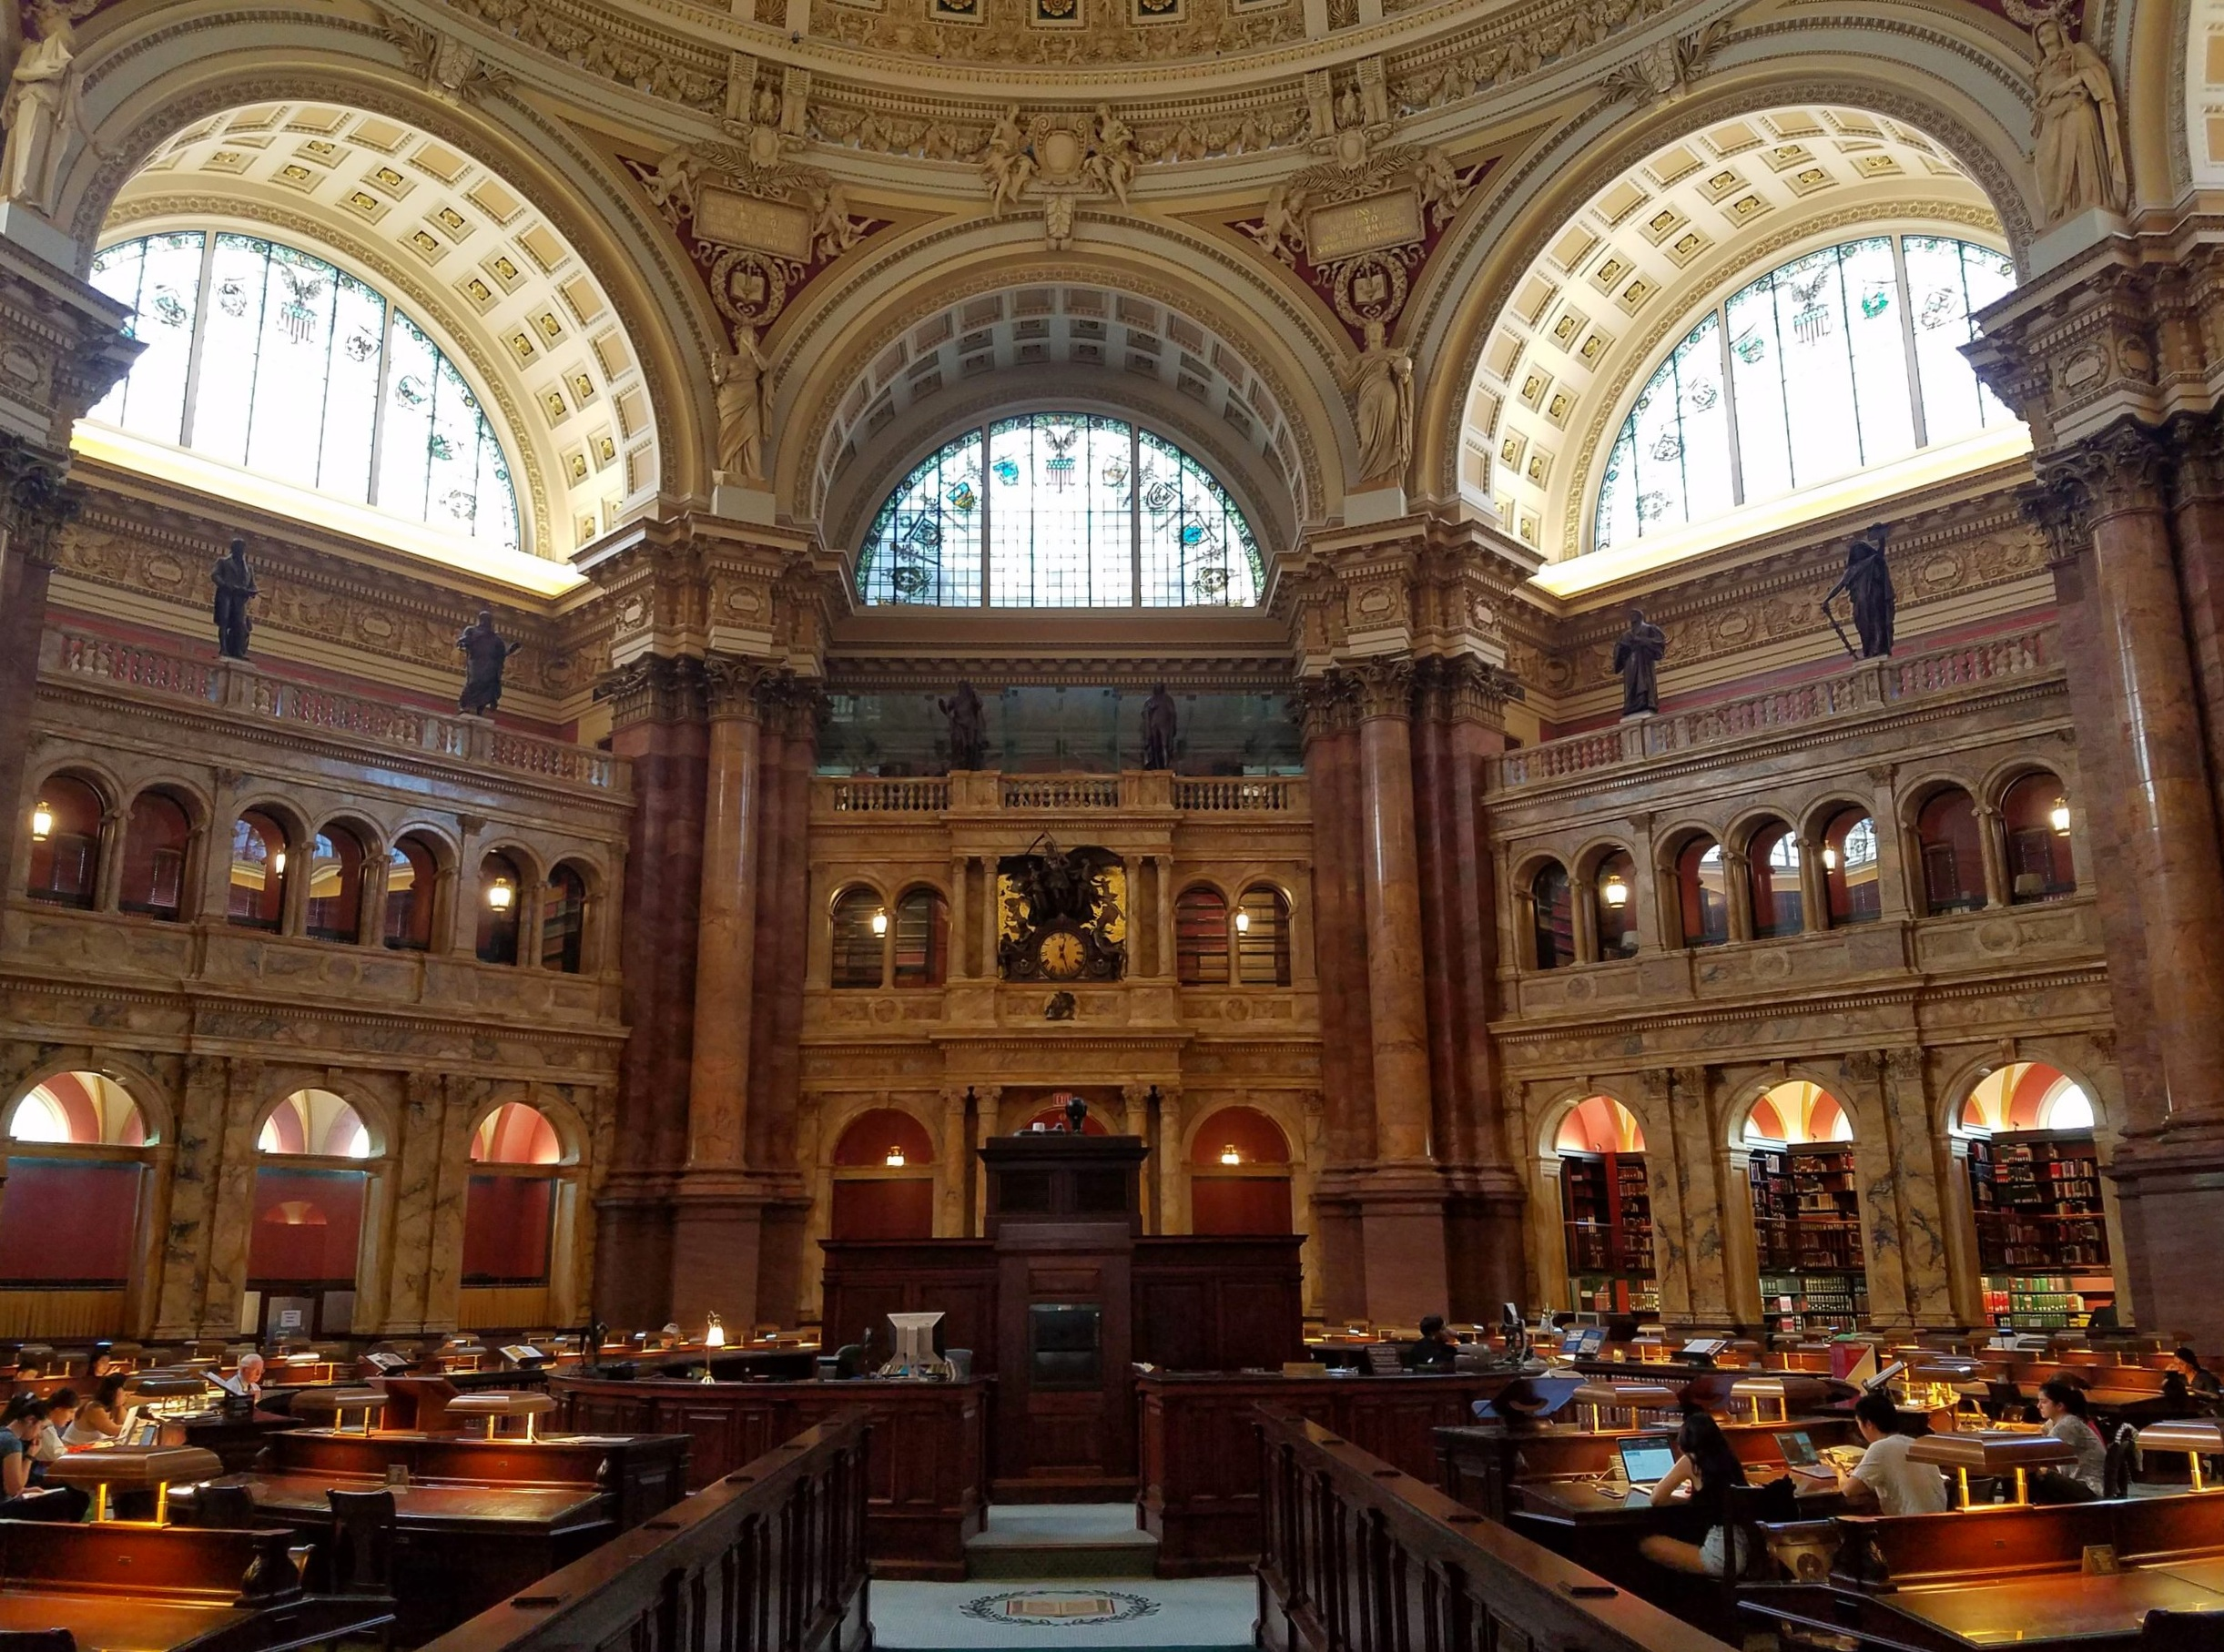 The magnificent main reading room.